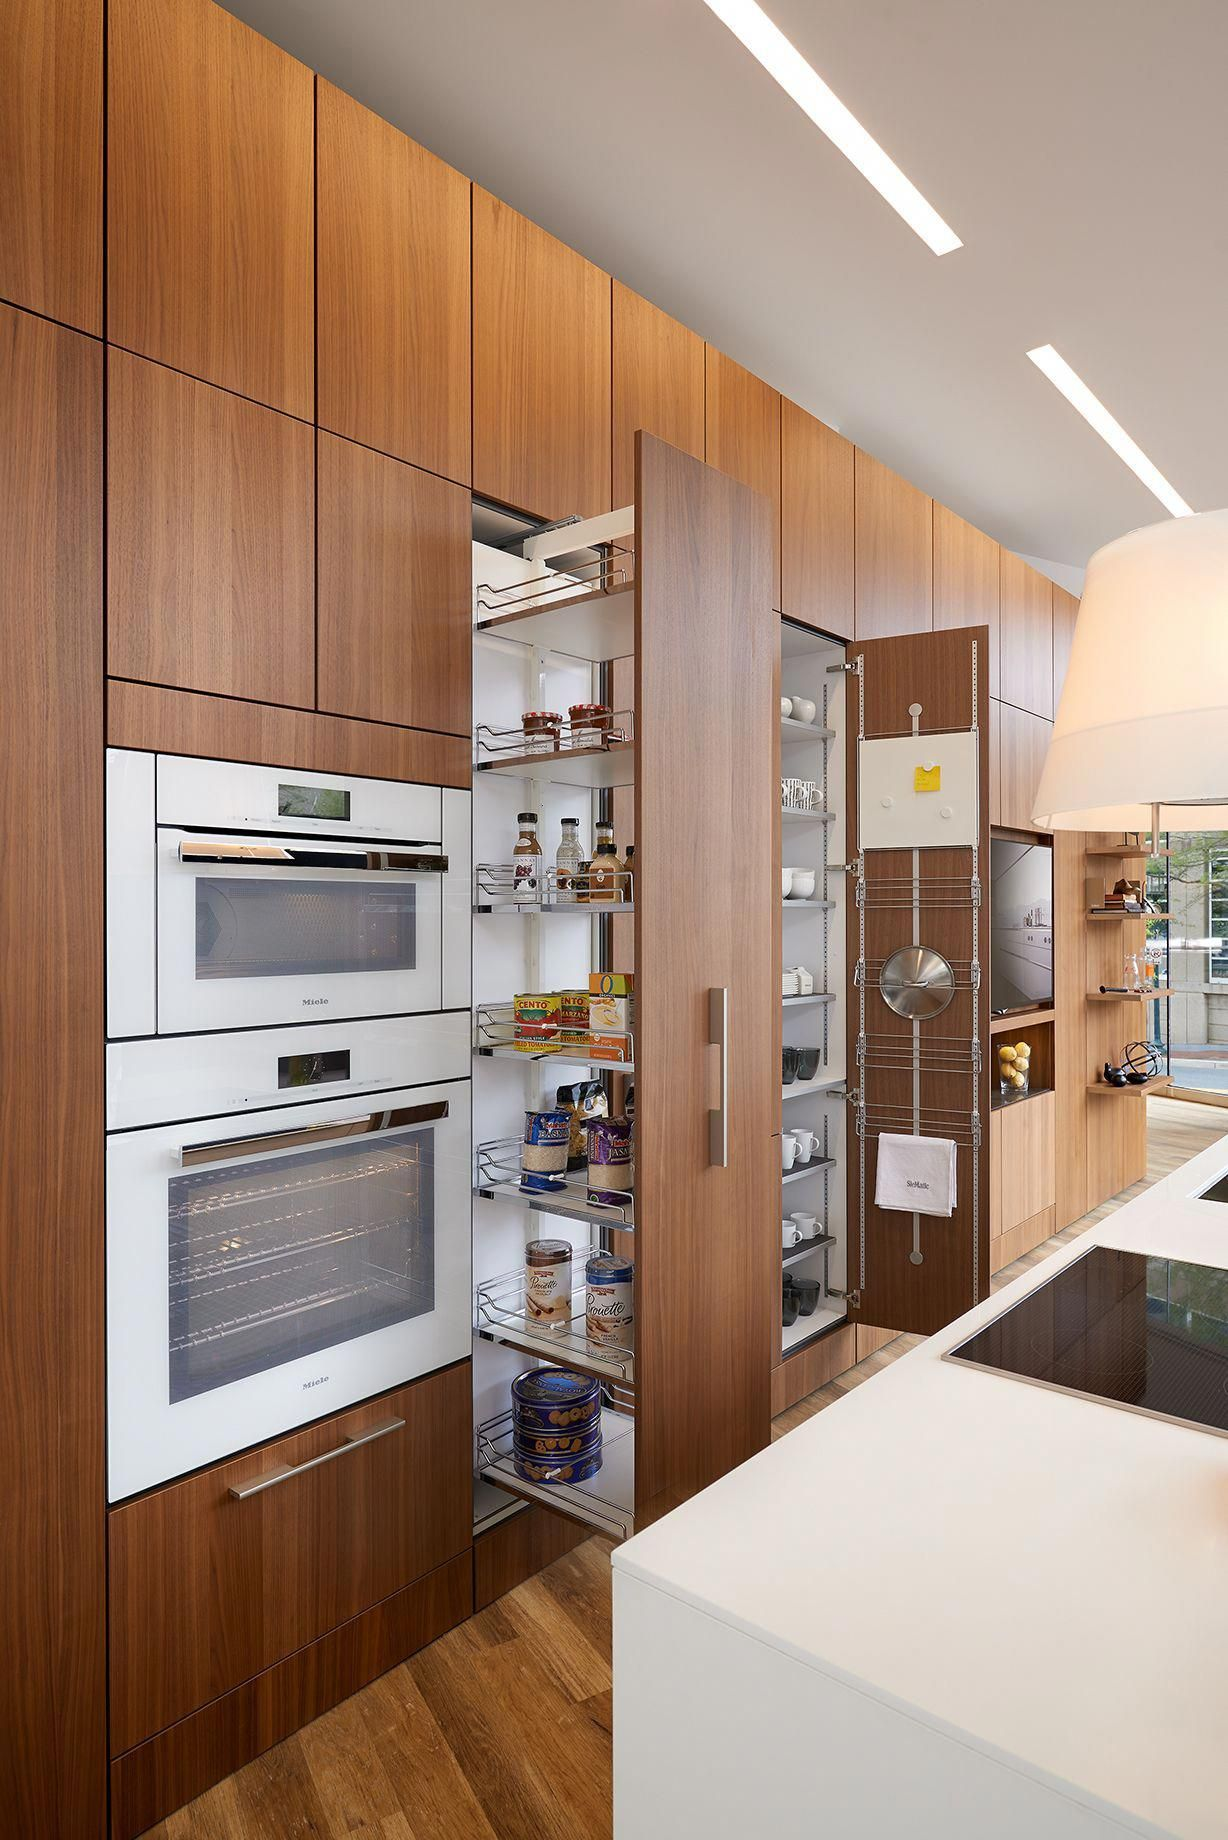 Siematic Pure Kitchen Siematic Wood Veneer Natural Walnut Cabinets Panels S Cabinetspane In 2020 Kitchen Cabinet Plans Kitchen Cabinet Design Kitchen Remodel